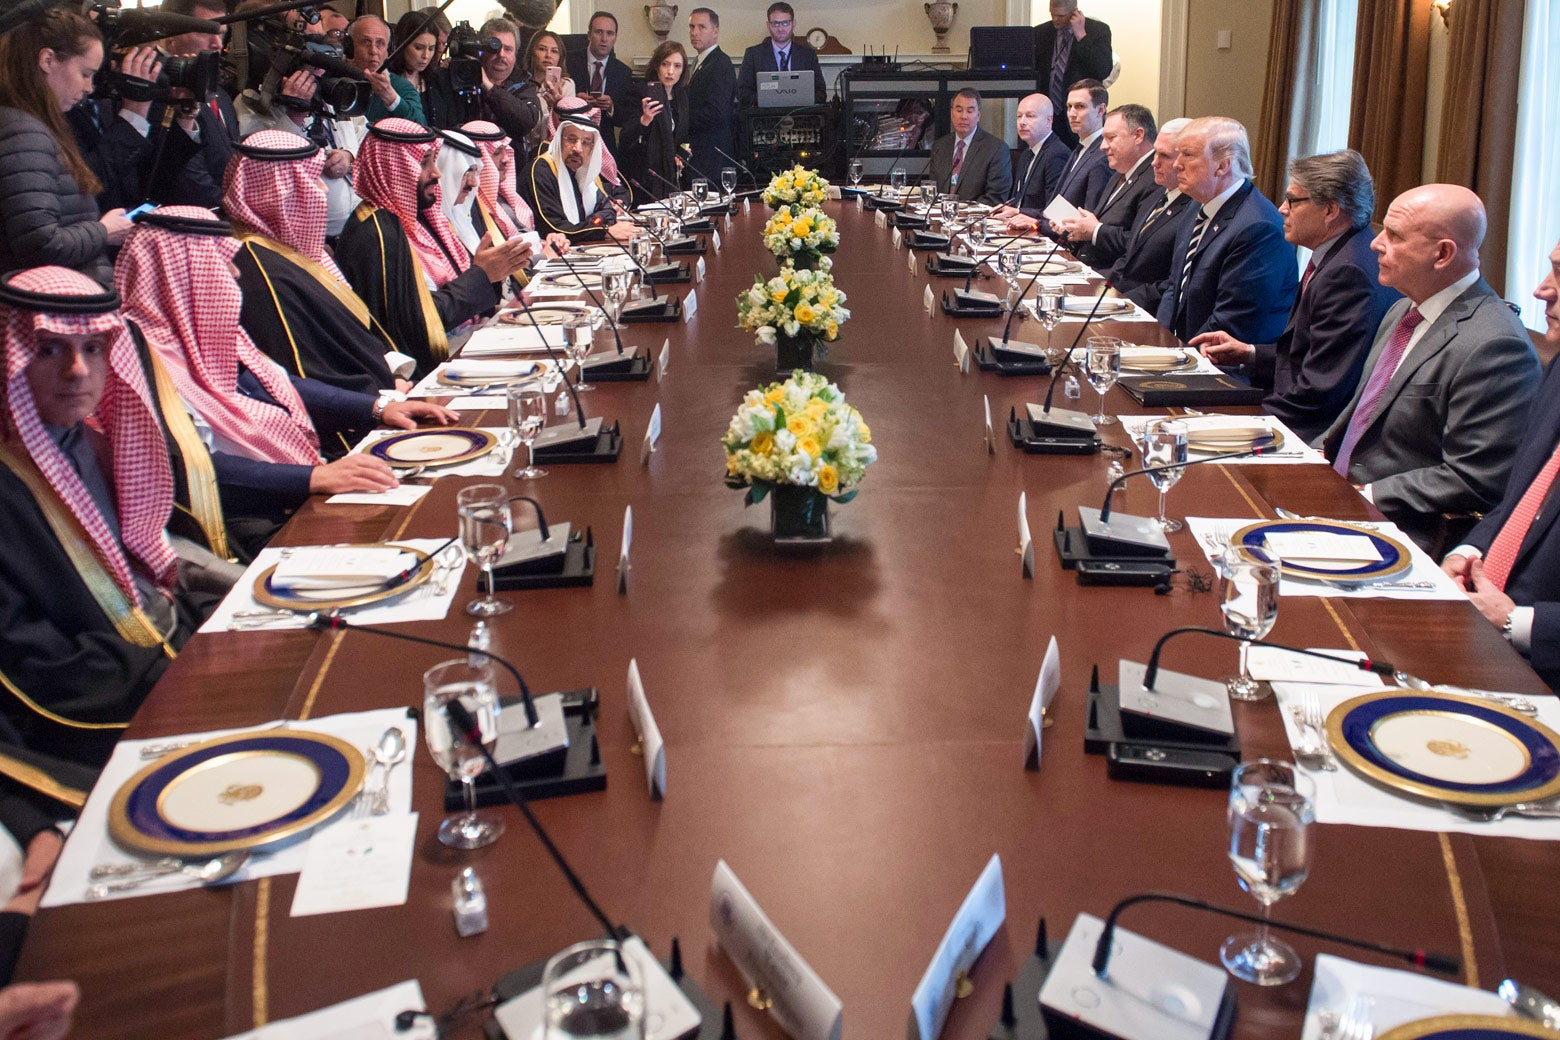 The Saudi delegation seated on one side of a long conference table, Trump and his aides on the other.